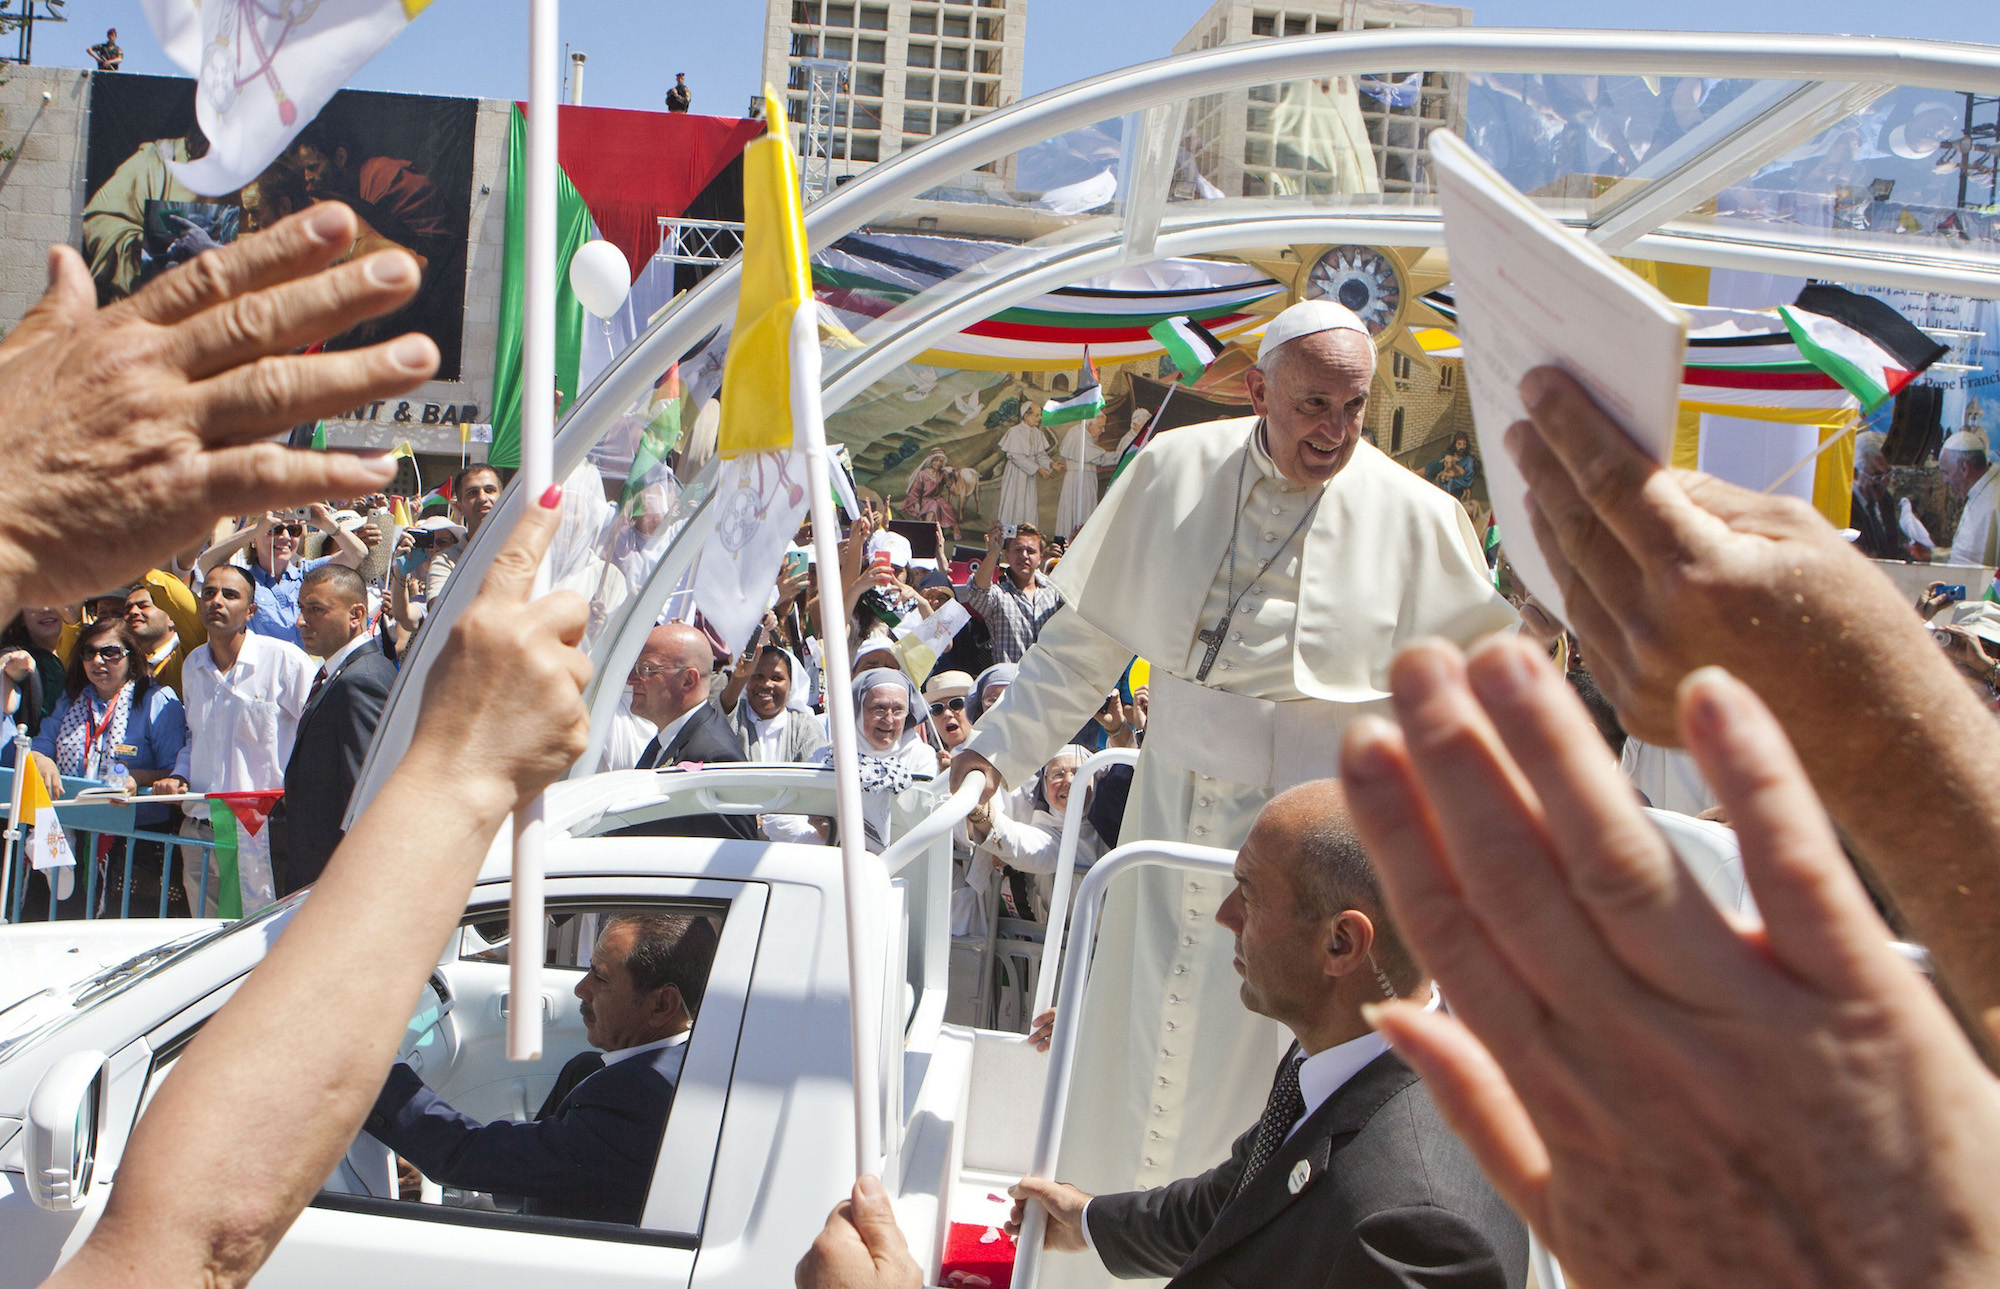 In an open vehicle, Pope Francis arrived in Bethlehem's Manger Square, which was packed with over 10,000 Christian pilgrims on Sunday, May 25, 2014. The visit marked the beginning of his three-day Middle East tour aimed at easing an ancient rift with Orthodox Christians and forging regional peace. (Photo by Heidi Levine/Sipa Press)